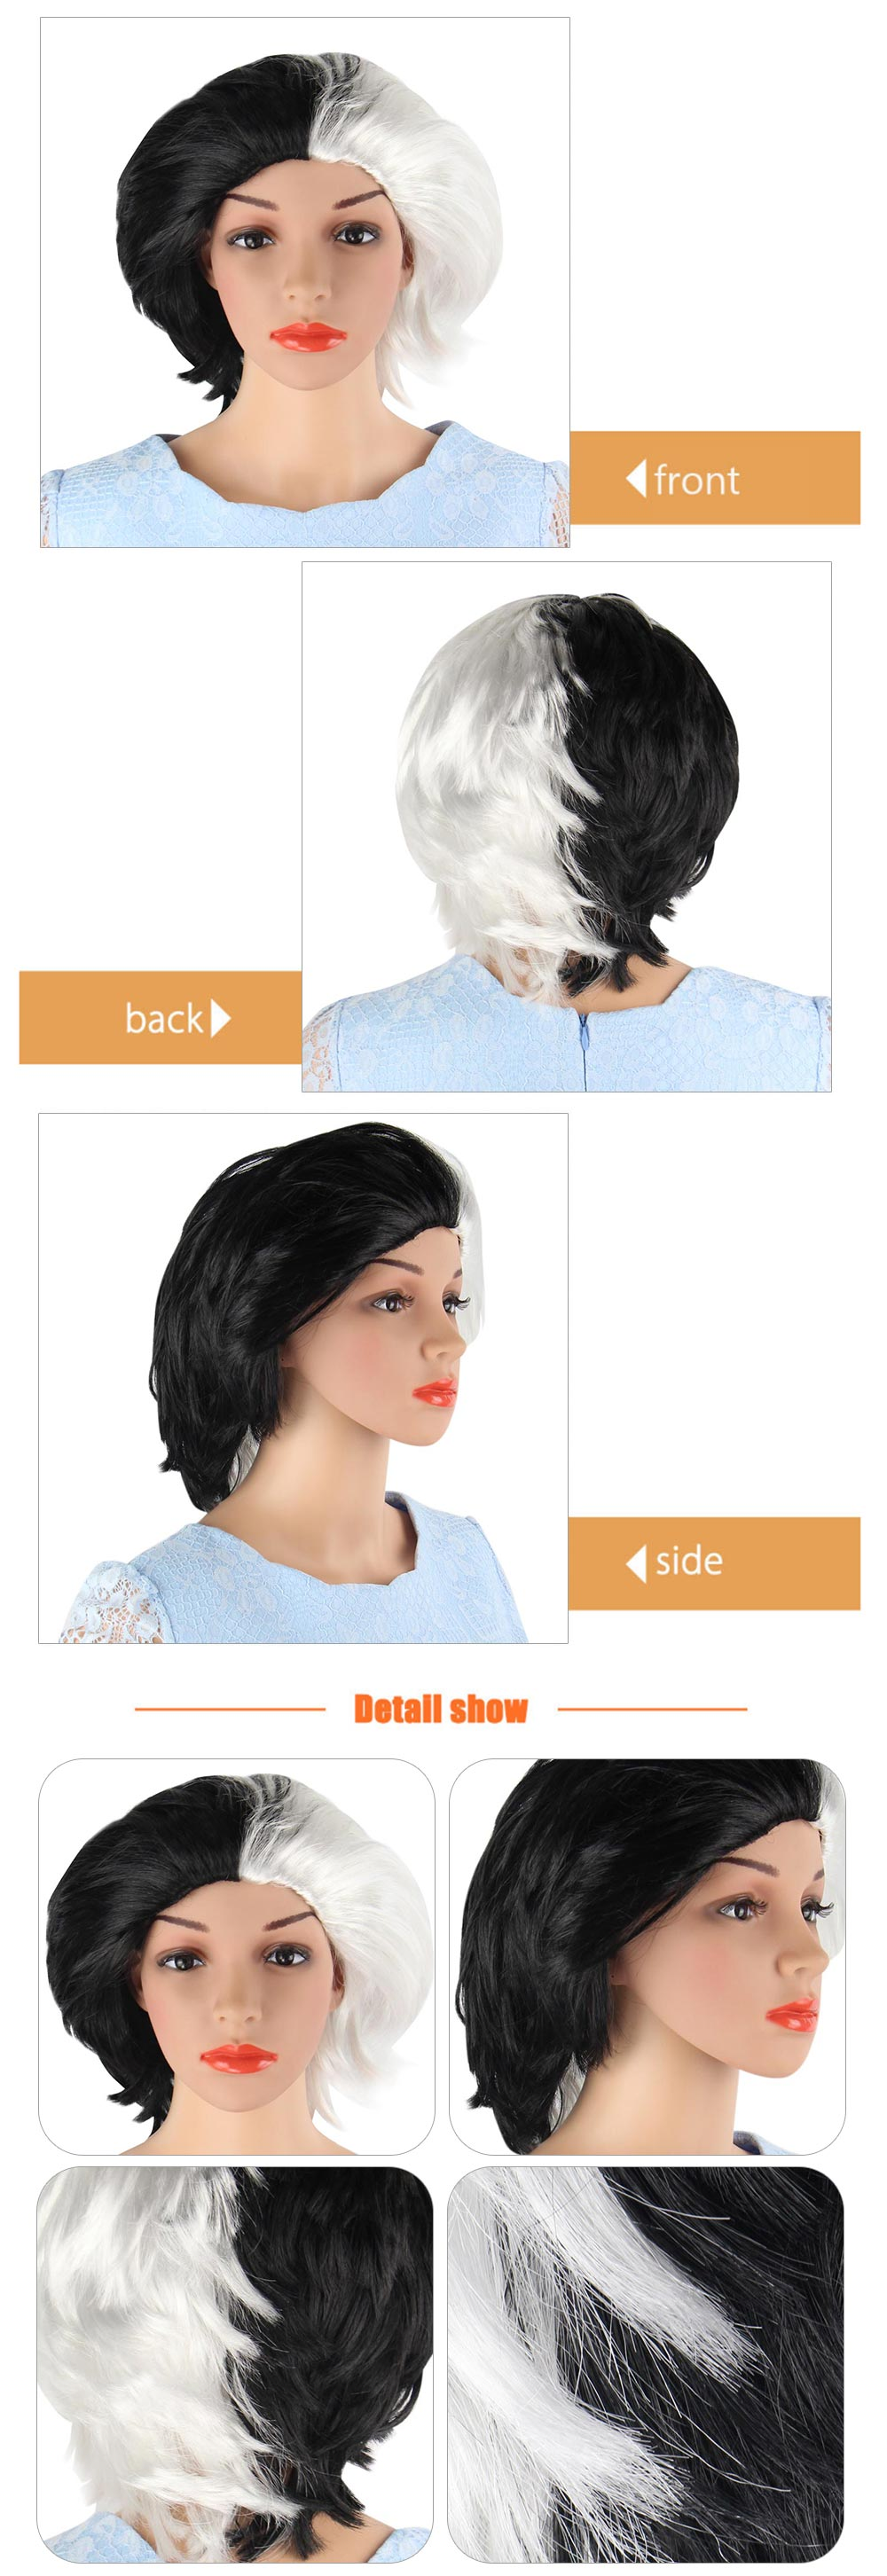 Short Slight Curly Half Black White Slicked Back Wigs Cosplay Hair Party Costume